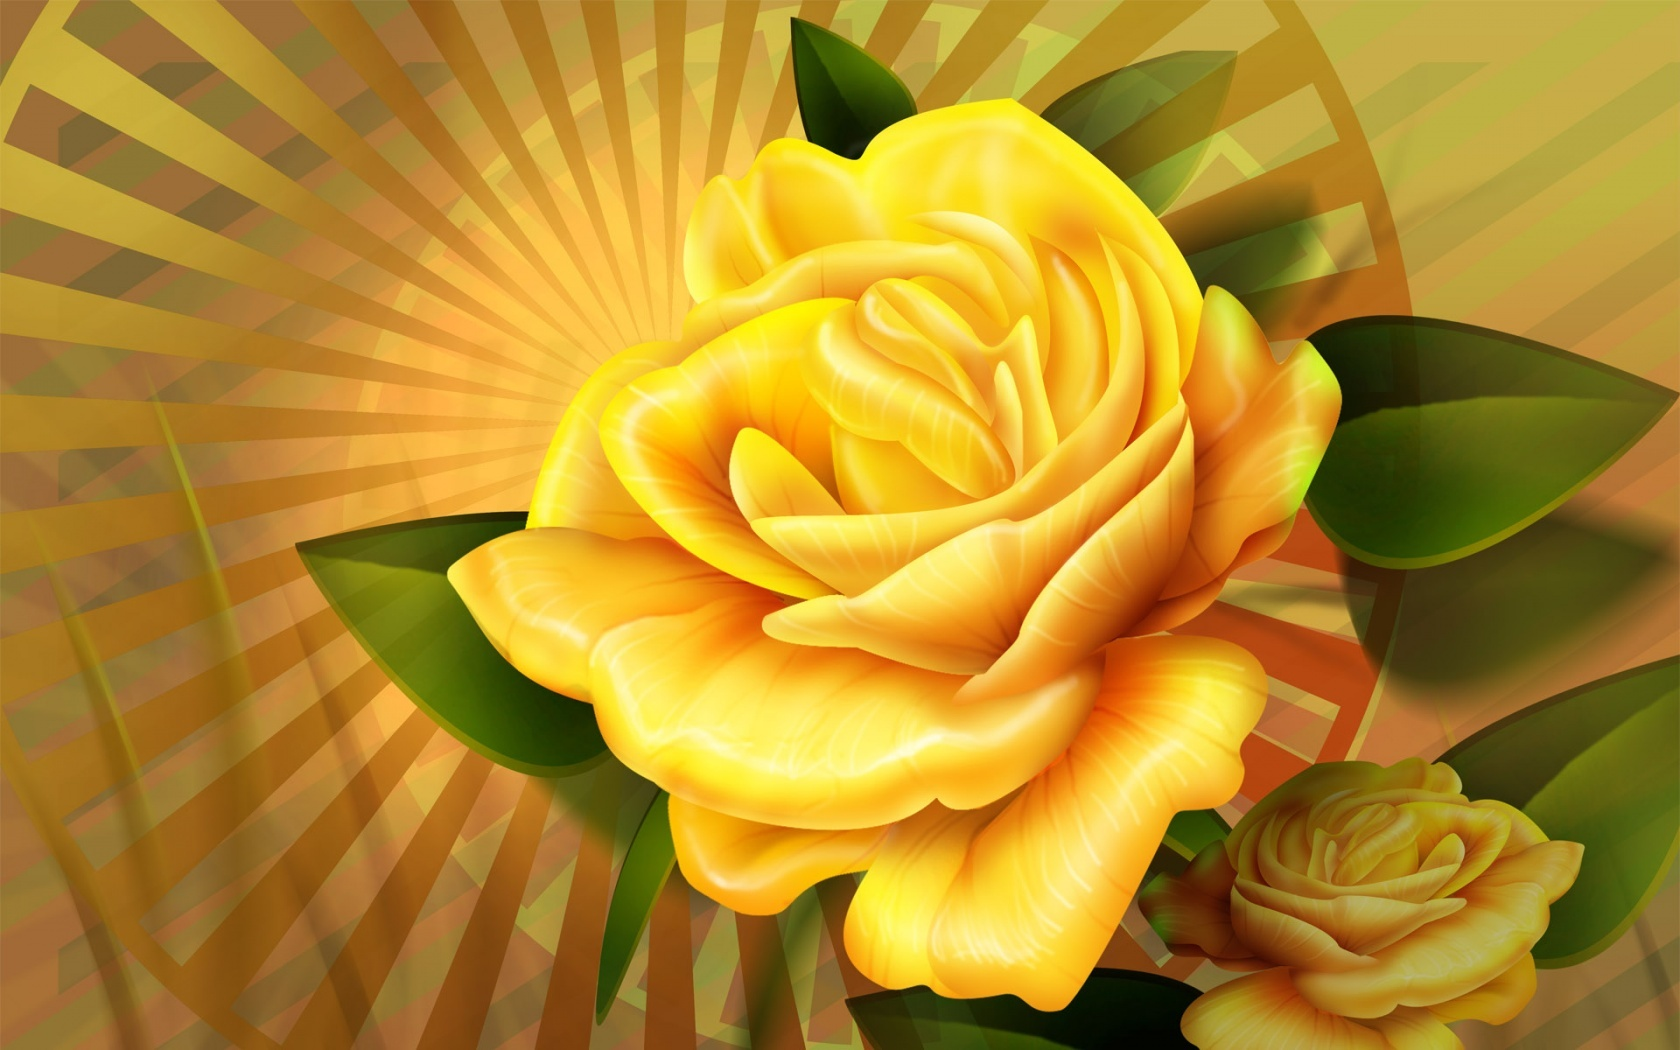 Yellow Rose Wallpapers In Jpg Format For Free Download